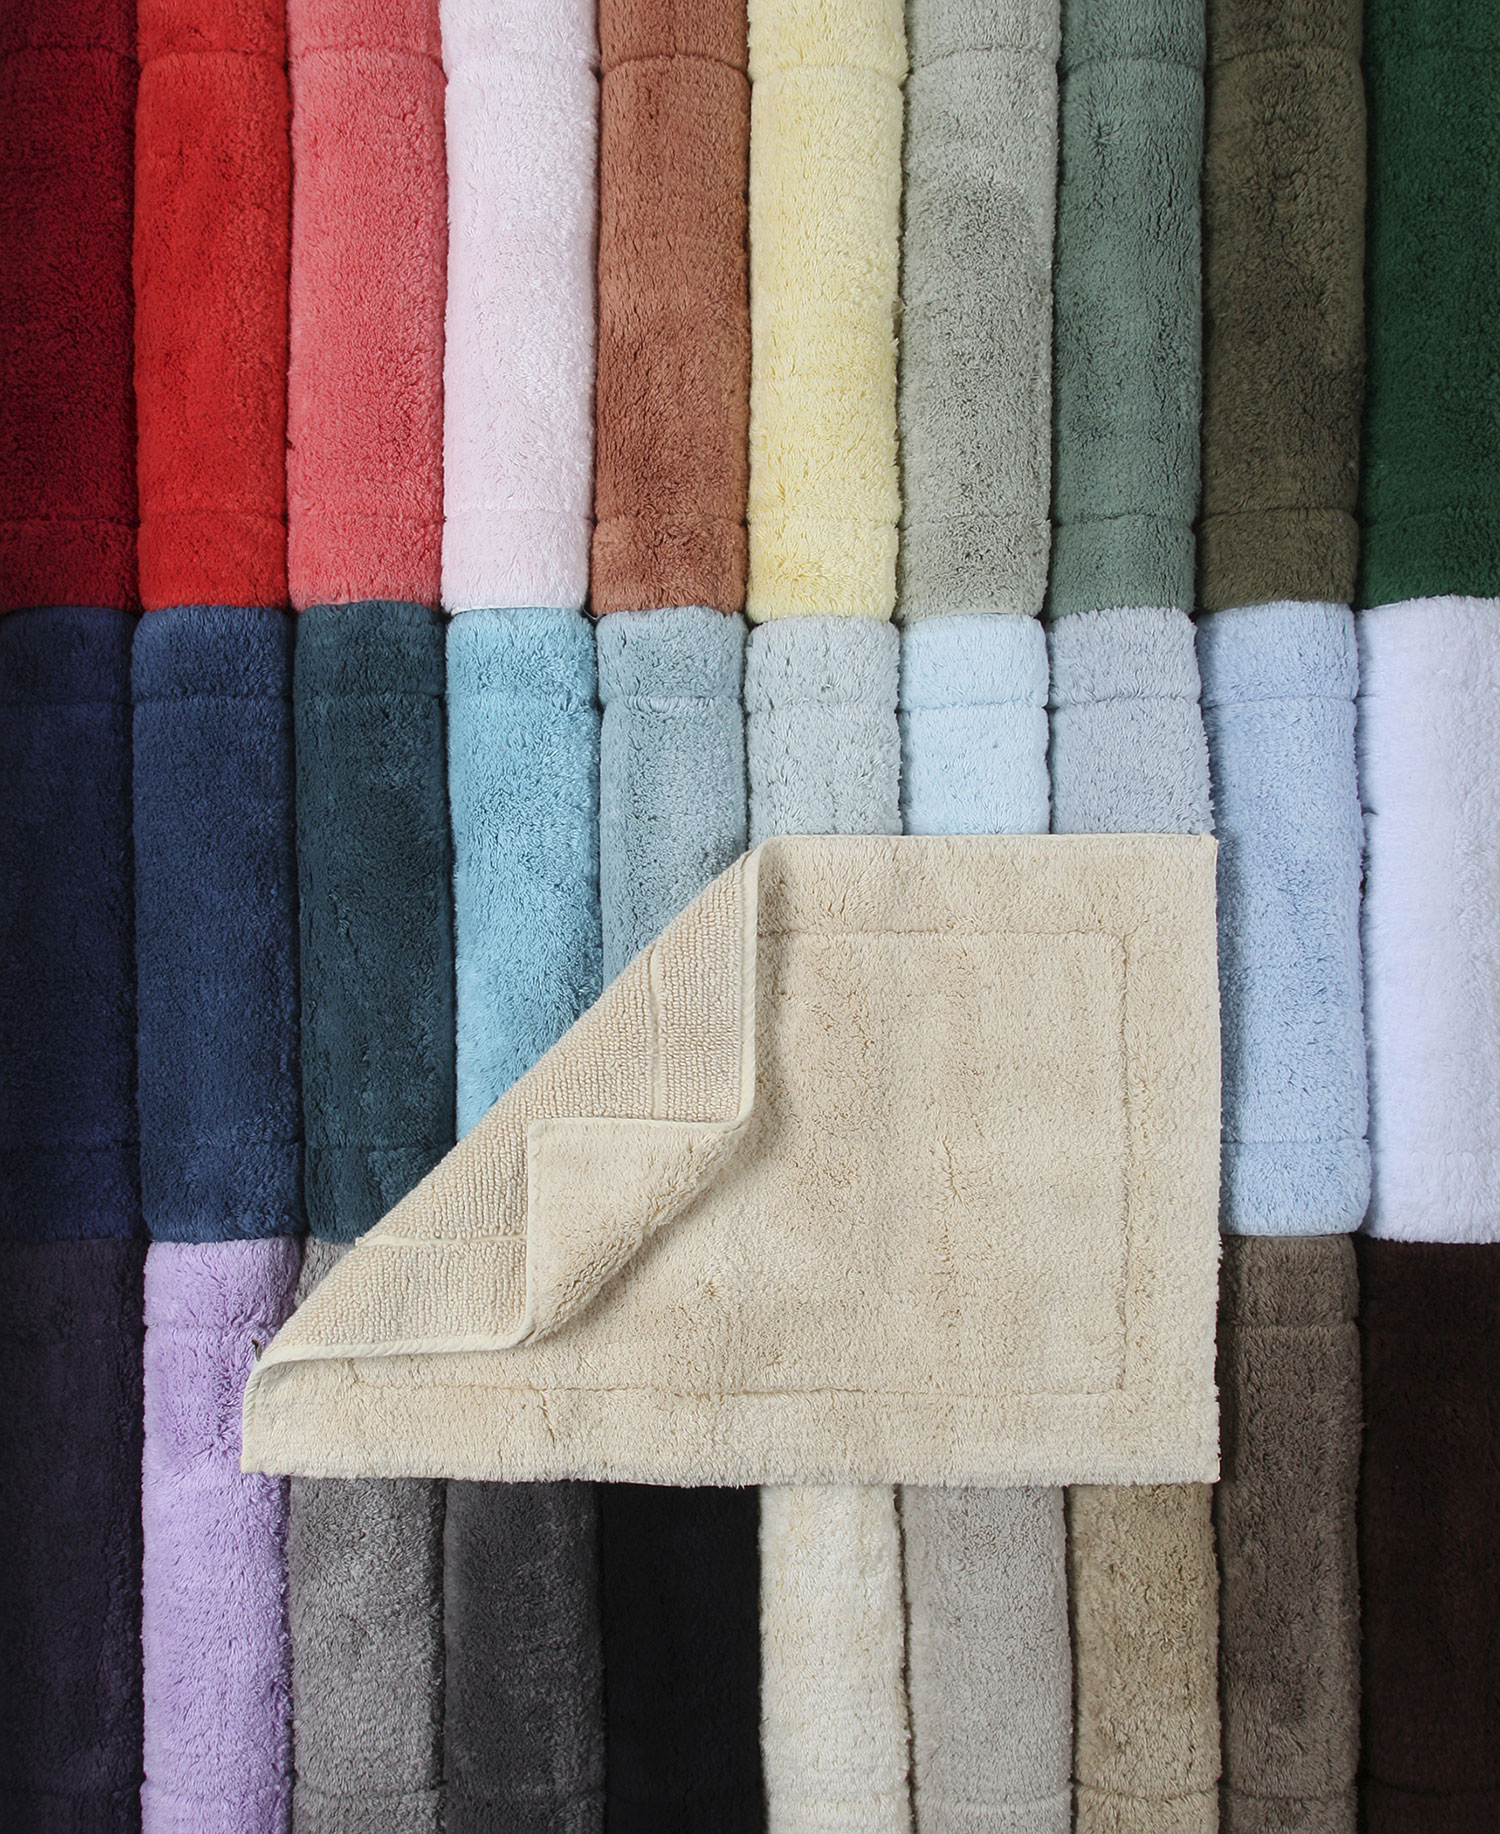 Wonderful A Luxury Bath Towel Might At First Blush Appear A Touch Unusual In A Mattress Showroom To Us, Bed And Bath Have Always Been Closely Related Available In A Range Of 60 Vibrant, Luscious Colours, Abyss Bath Towels And Habidecor